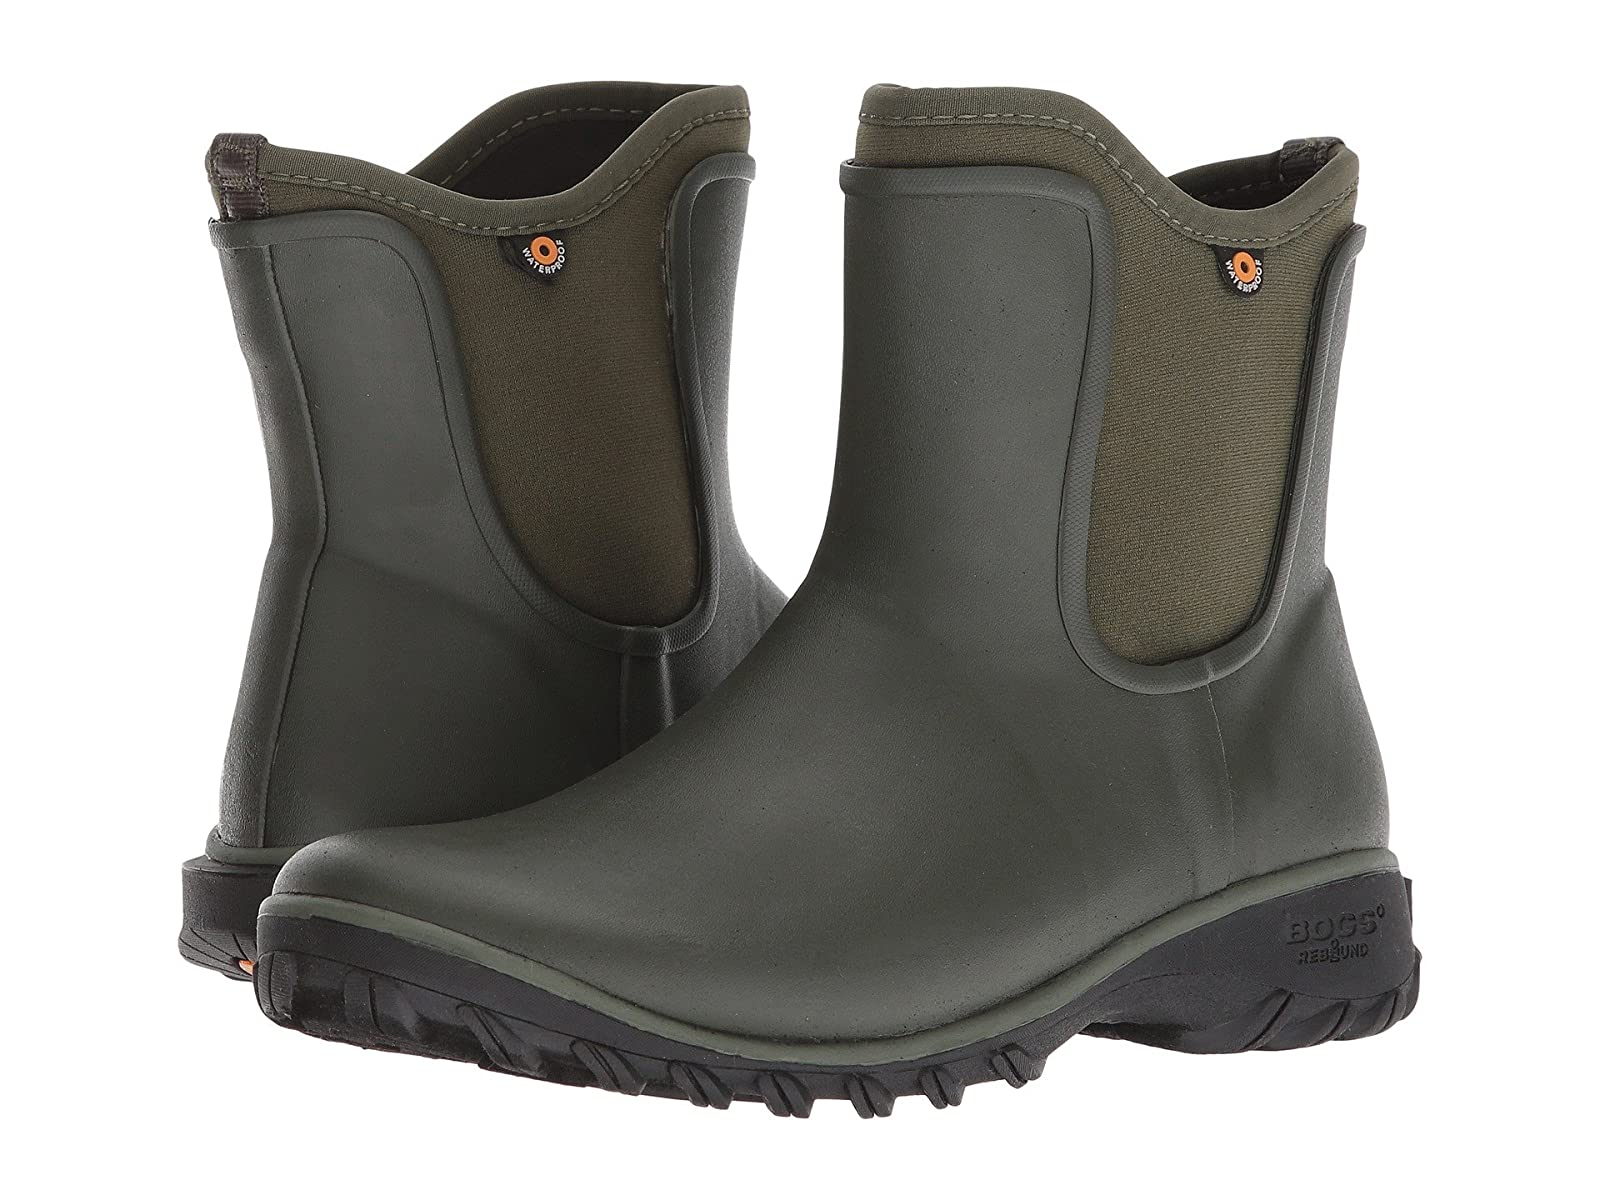 Bogs Sauvie Solid Slip-On BootSelling fashionable and eye-catching shoes